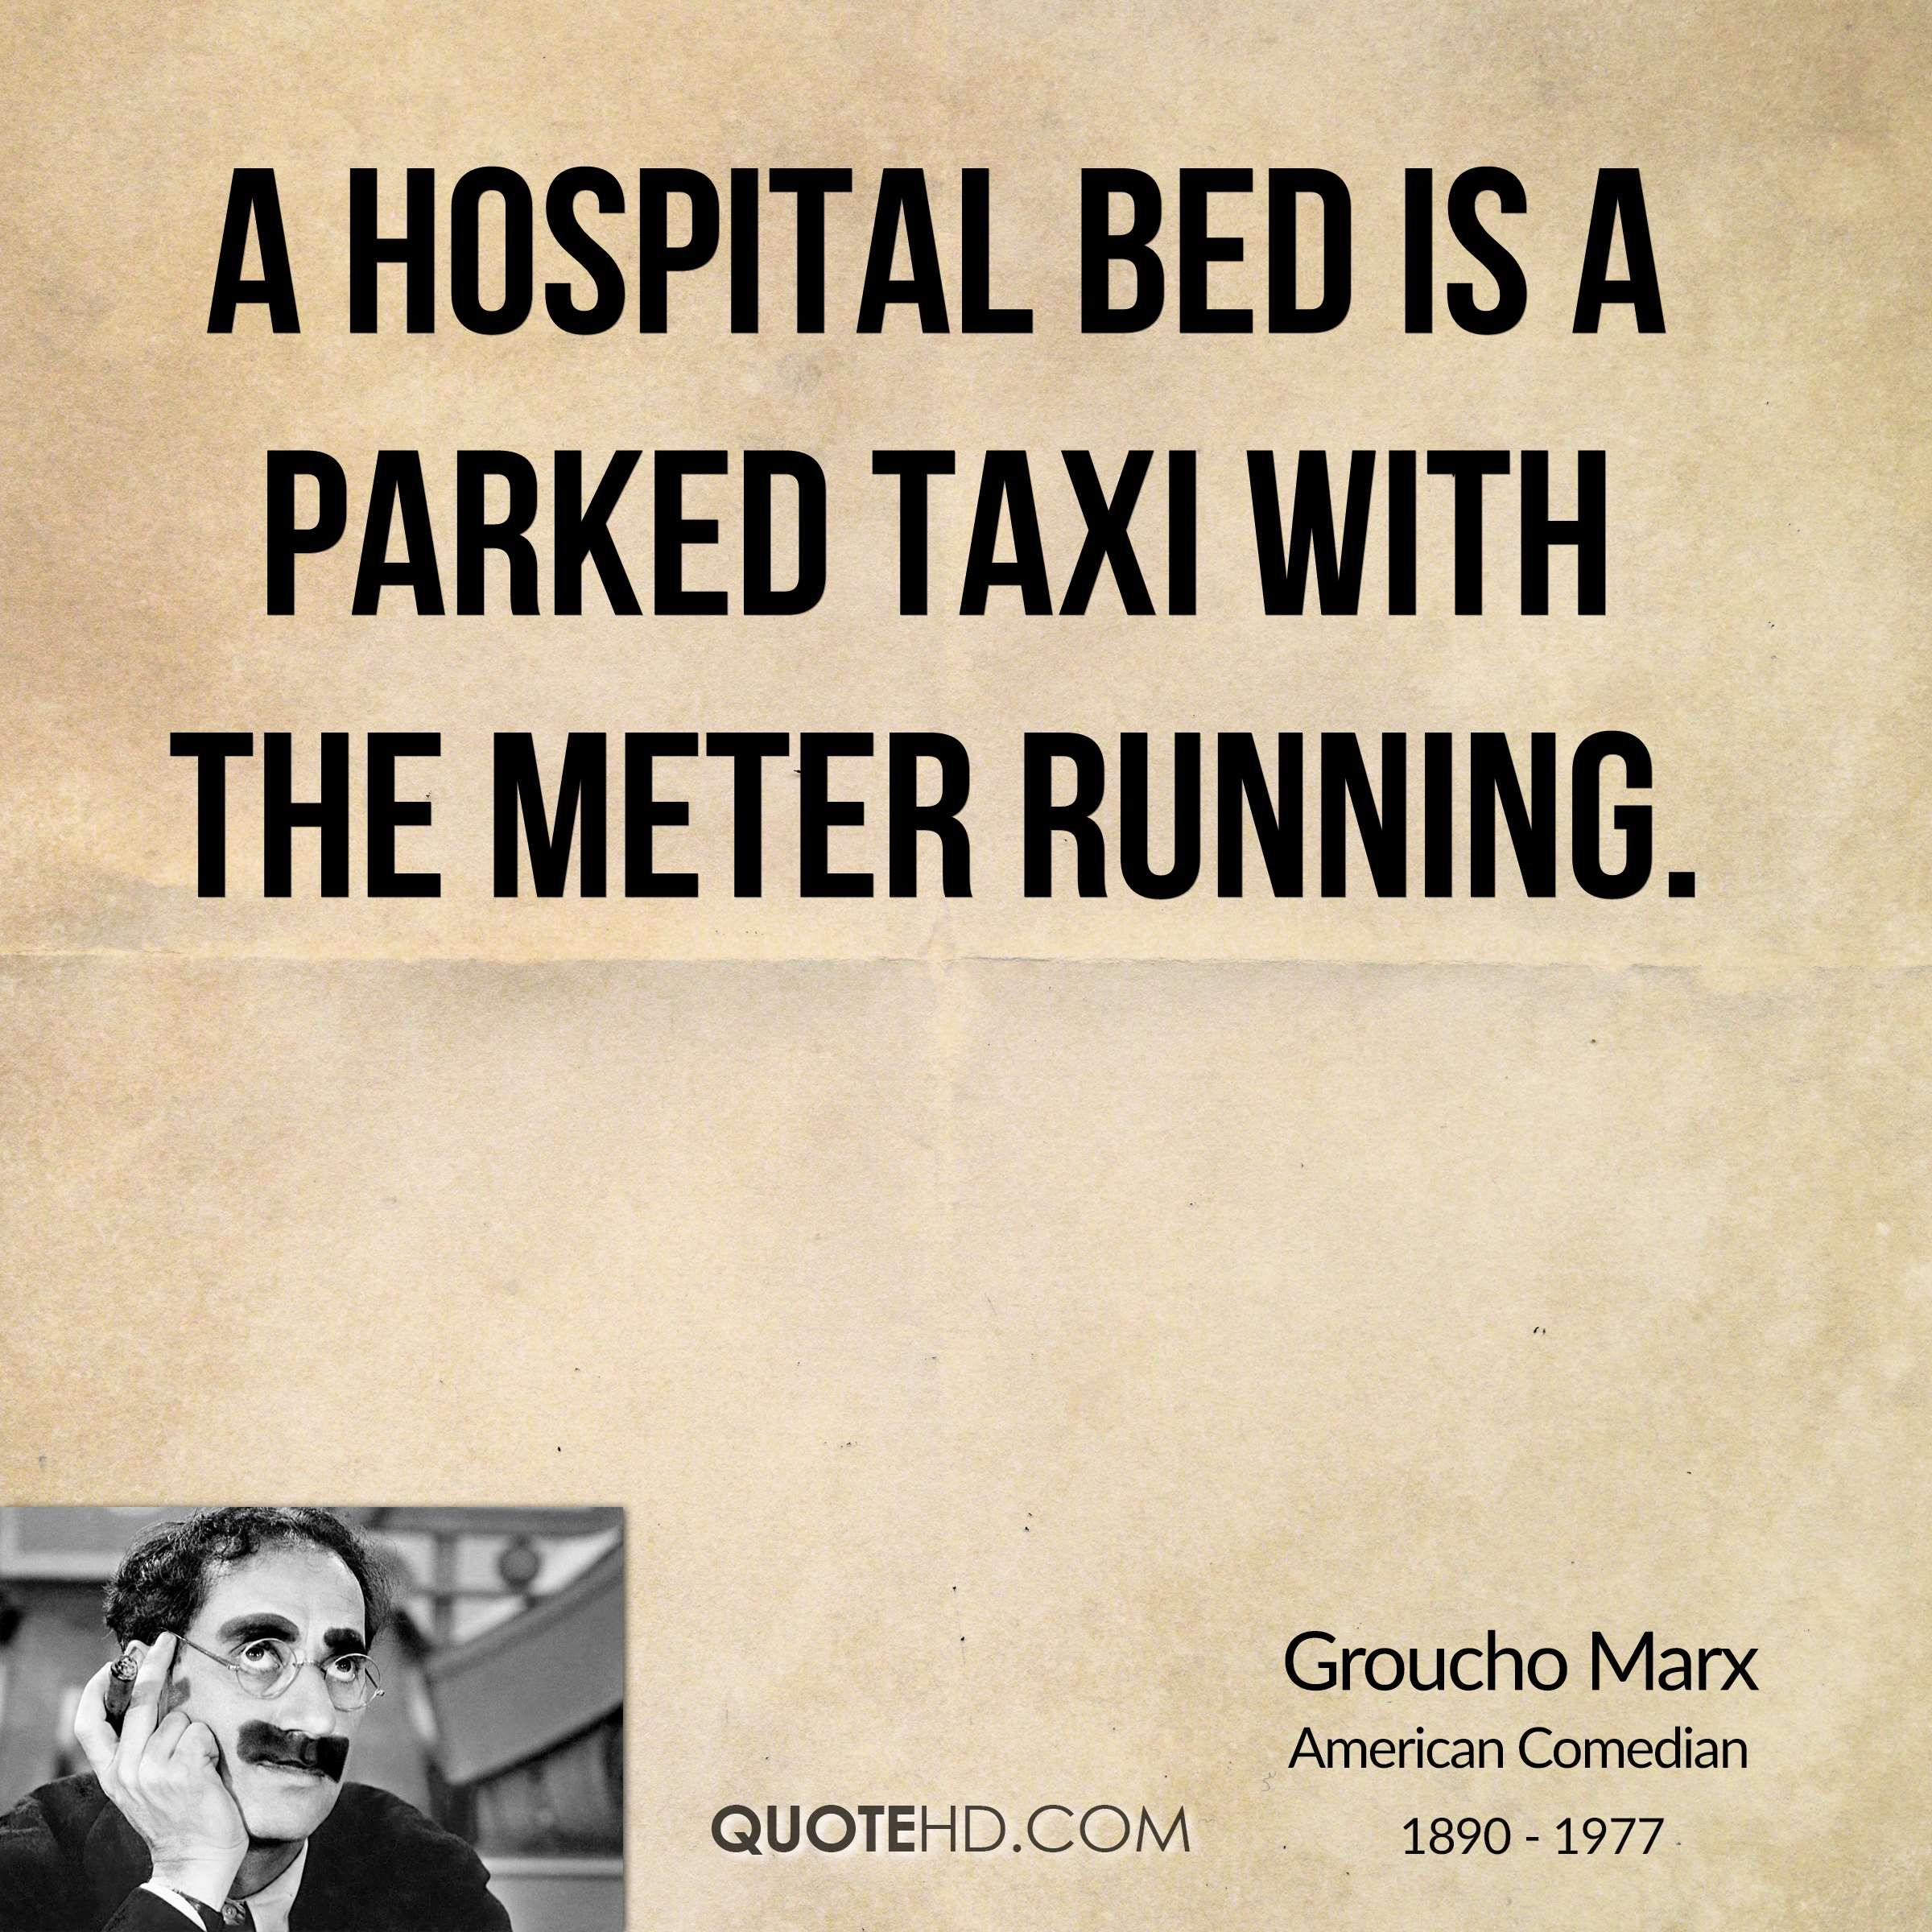 Best Quotes About Medicine: Hospital Bed Is A Parked Taxi With The Meter Running